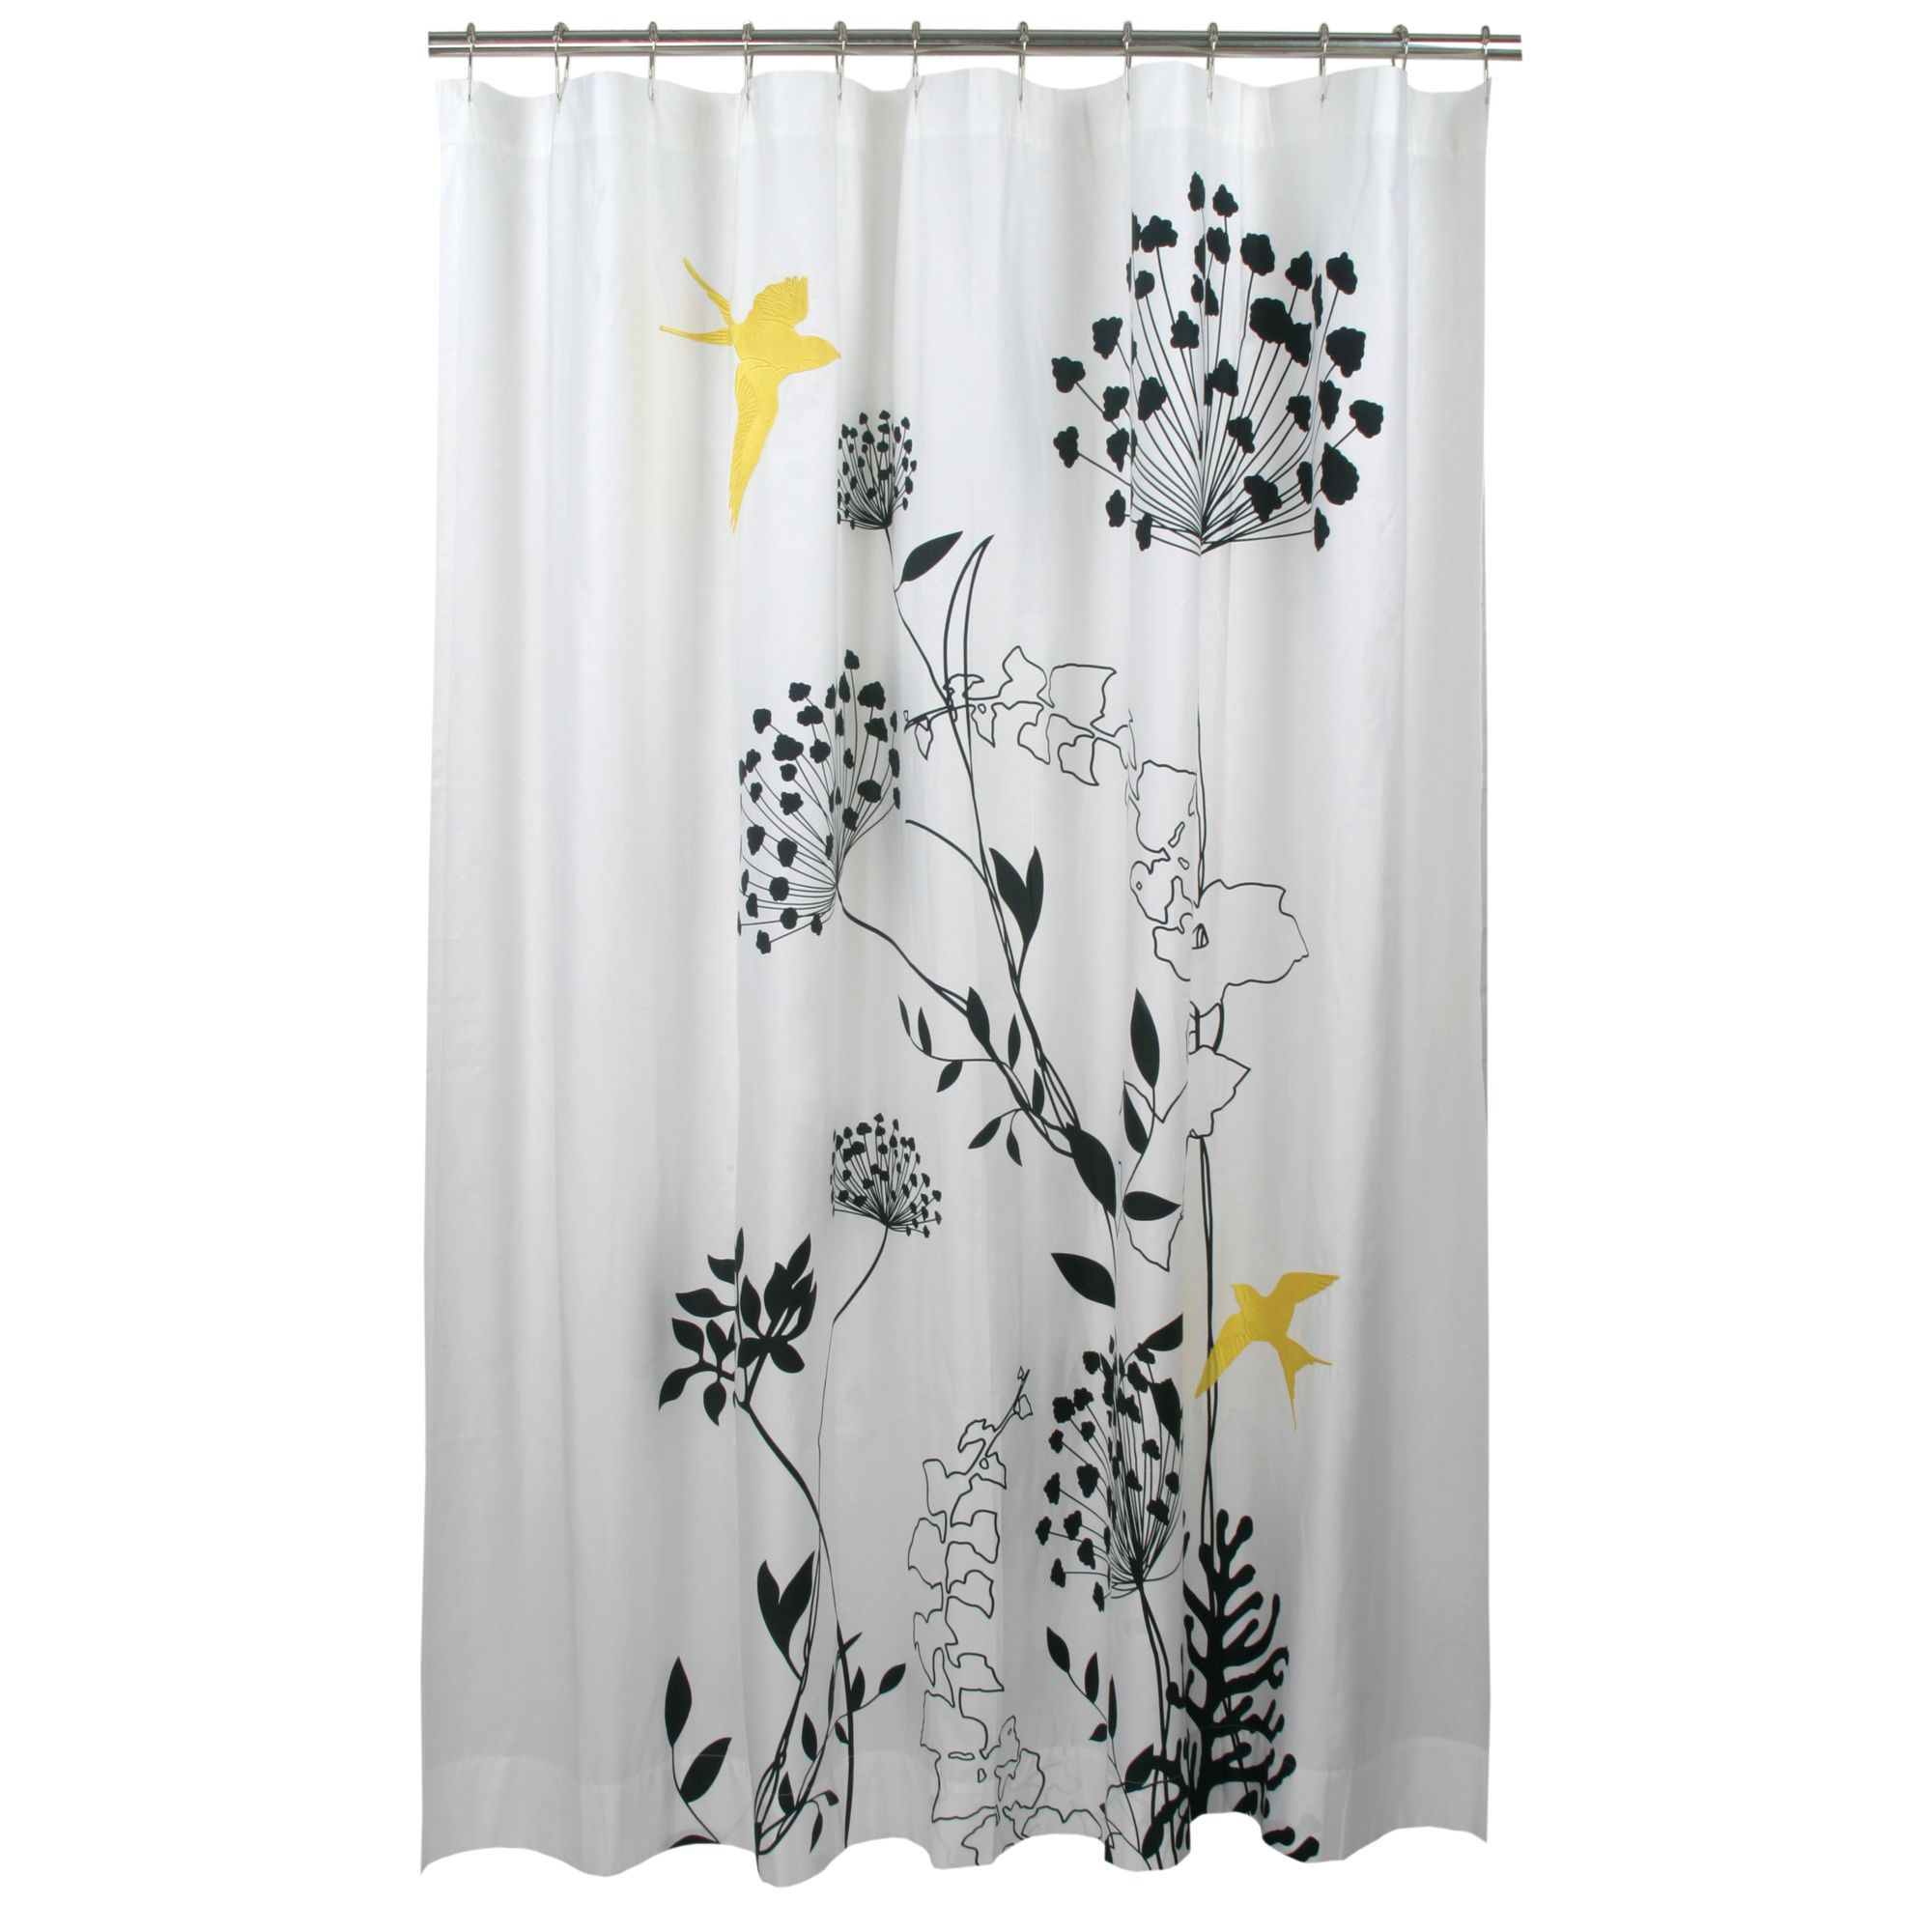 Blissliving Home Anis Yellow Shower Curtain